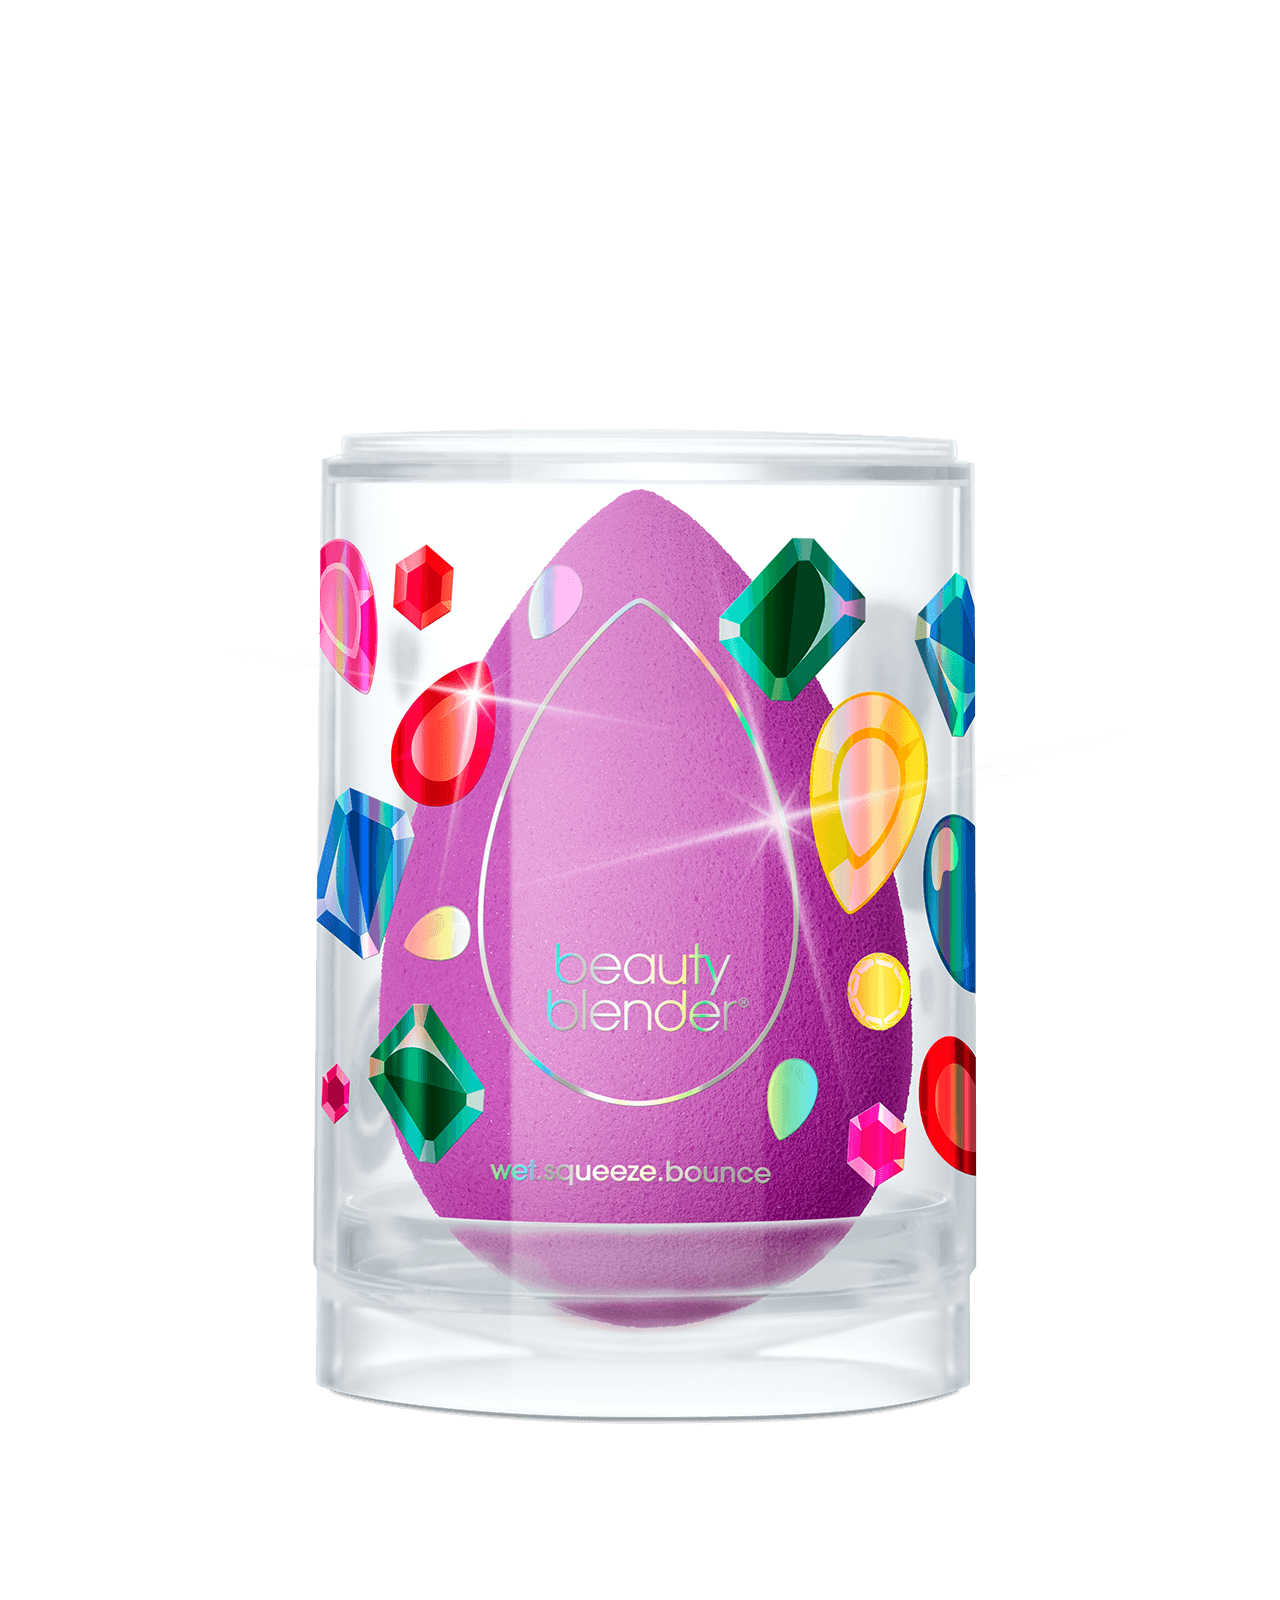 THE AMETHYST Limited-Edition Beautyblender makeup sponge